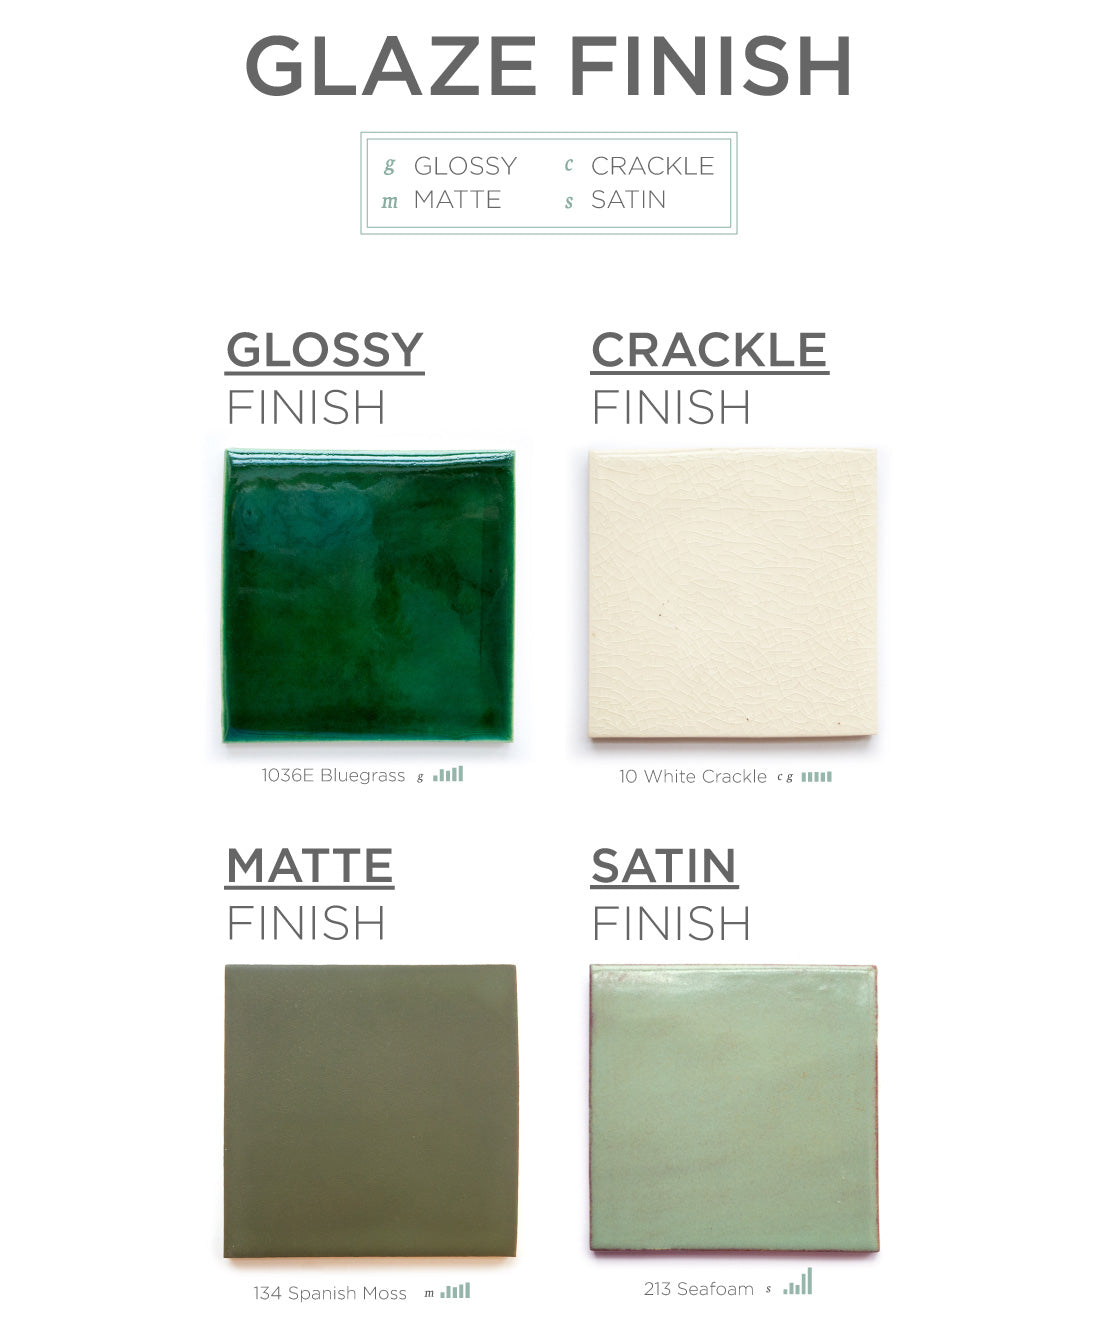 Glaze101 Glaze 101: Our Guide to Understanding Glazes! Tile Education   ClayBody2 Glaze 101: Our Guide to Understanding Glazes! Tile Education   1017E-1017W-SeaMist Glaze 101: Our Guide to Understanding Glazes! Tile Education   GlazeFinish2 Glaze 101: Our Guide to Understanding Glazes! Tile Education